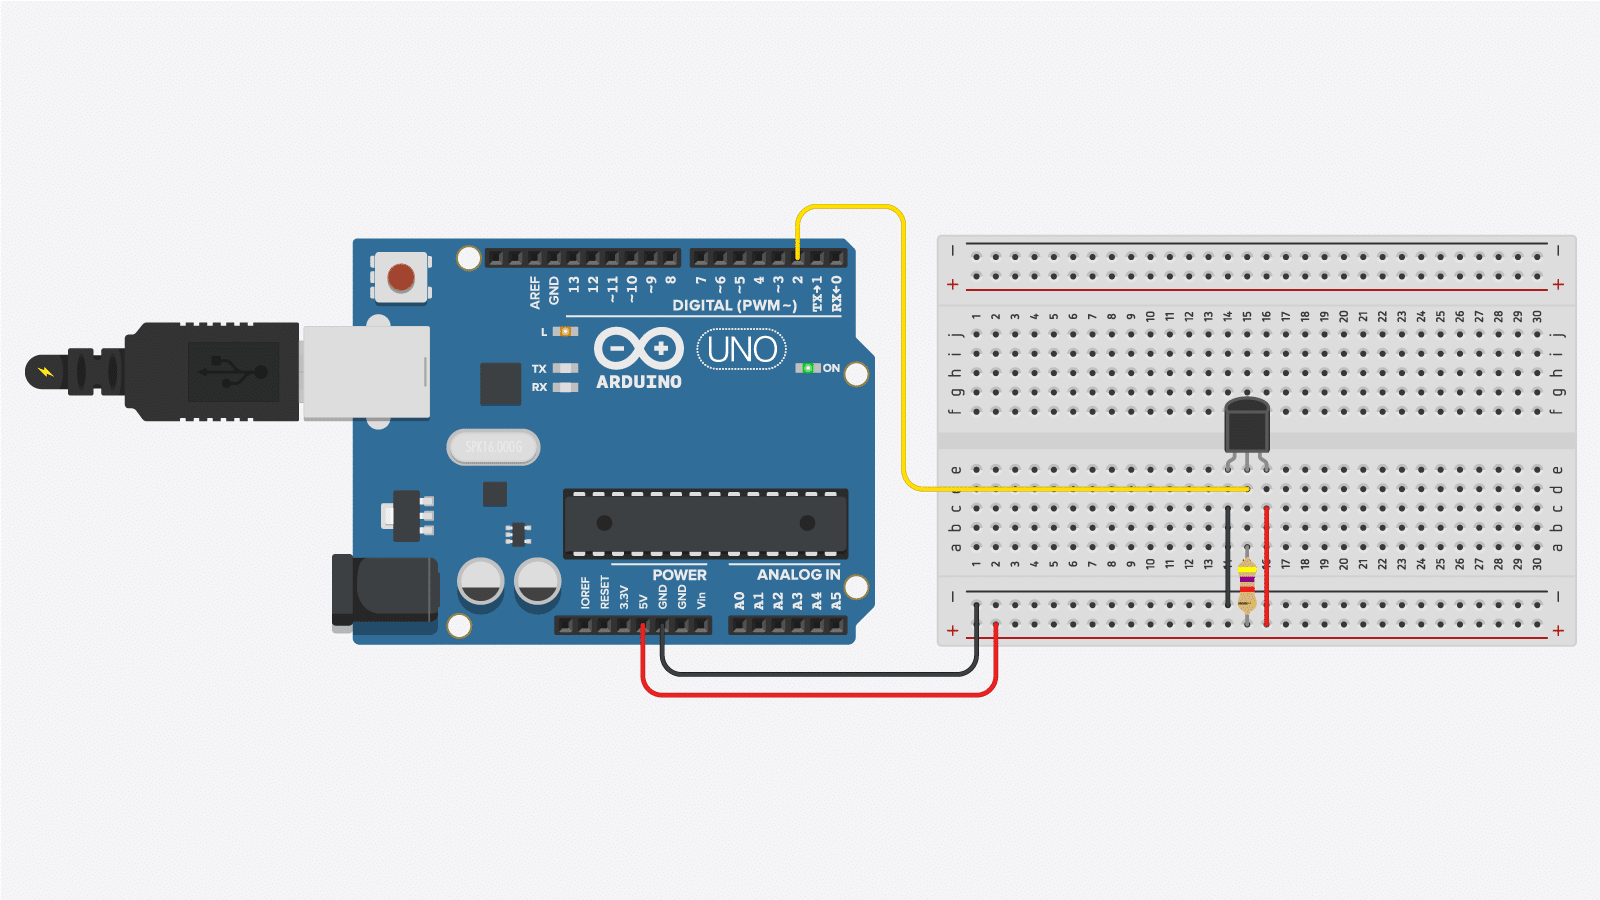 DS18B20-digital-temperature-sensor-with-Arduino-connections-wiring-diagram-schematic-circuit-tutorial-featured-image